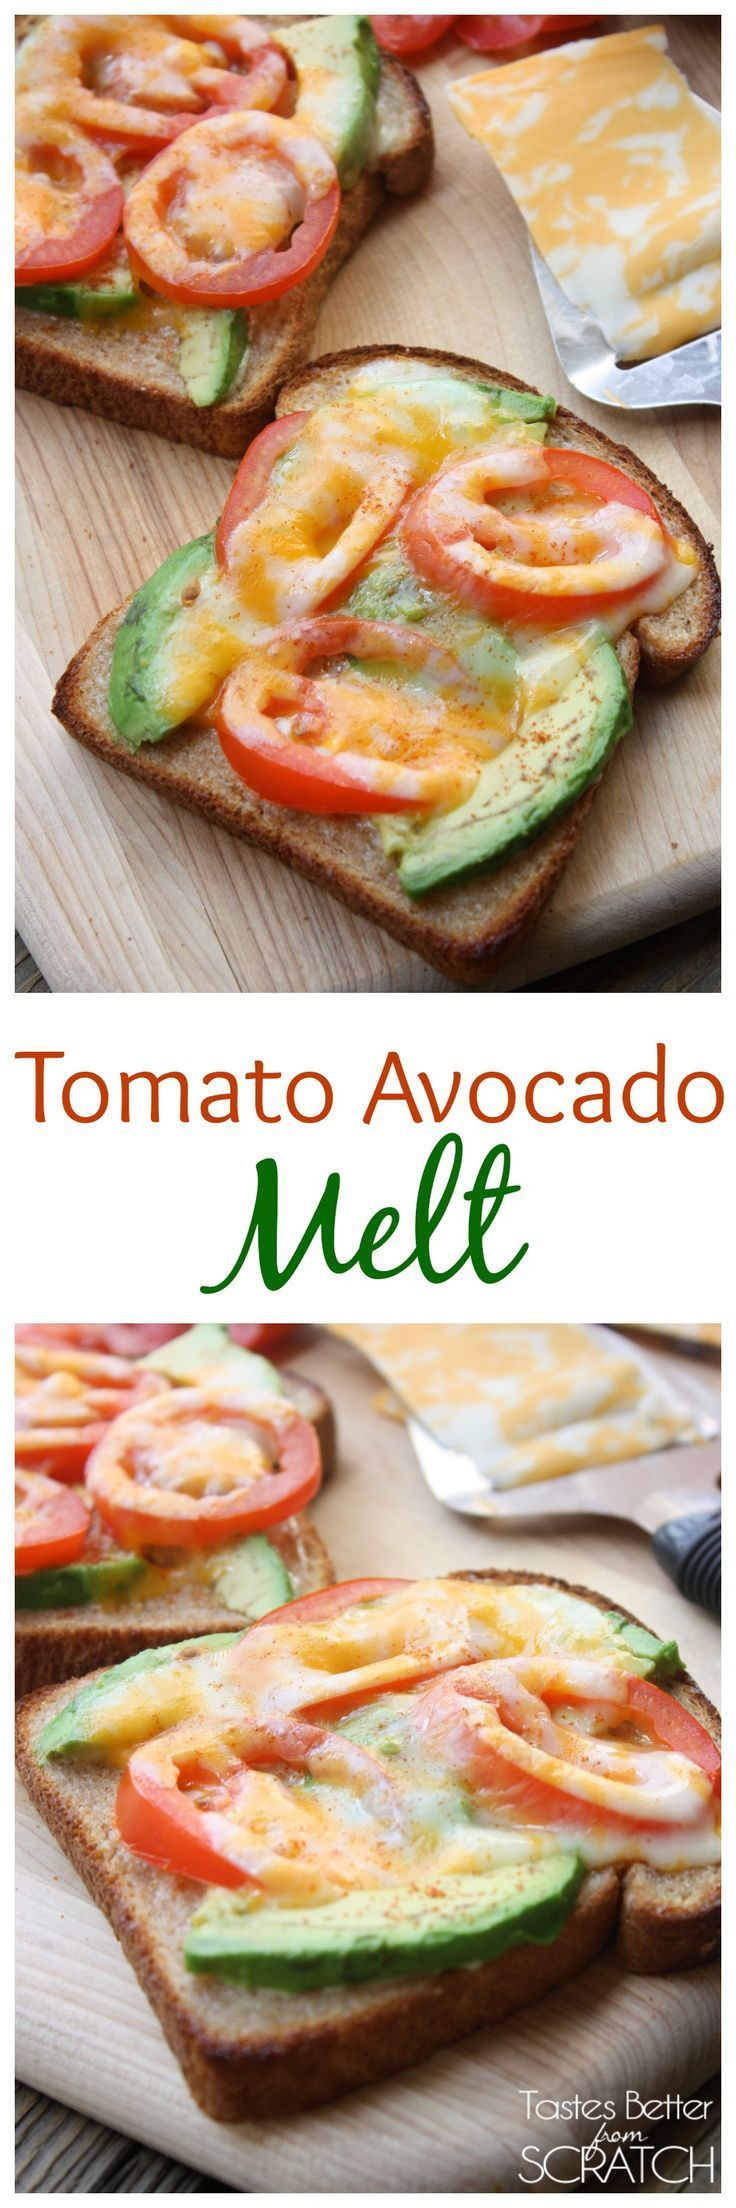 This Tomato Avocado Melt is my all-time favorite lunch for me and my toddler! It's super easy and there's a special ingredient that has me addicted!